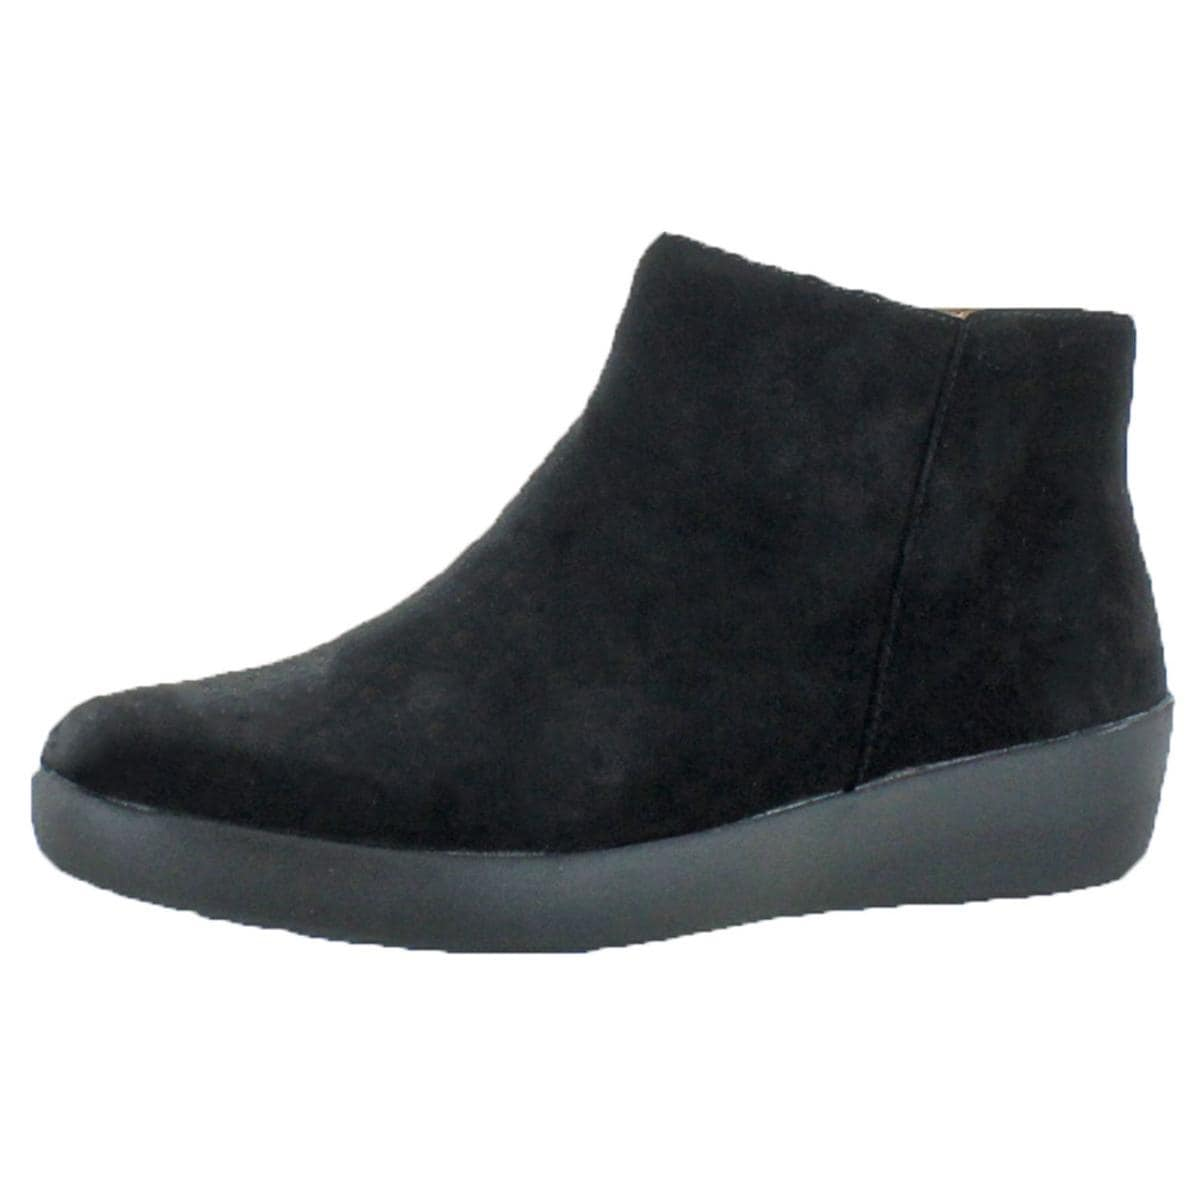 1d800ee73df53b Shop Fitflop Womens Sumi Booties SupercomFF Ankle - Free Shipping Today -  Overstock - 23528355